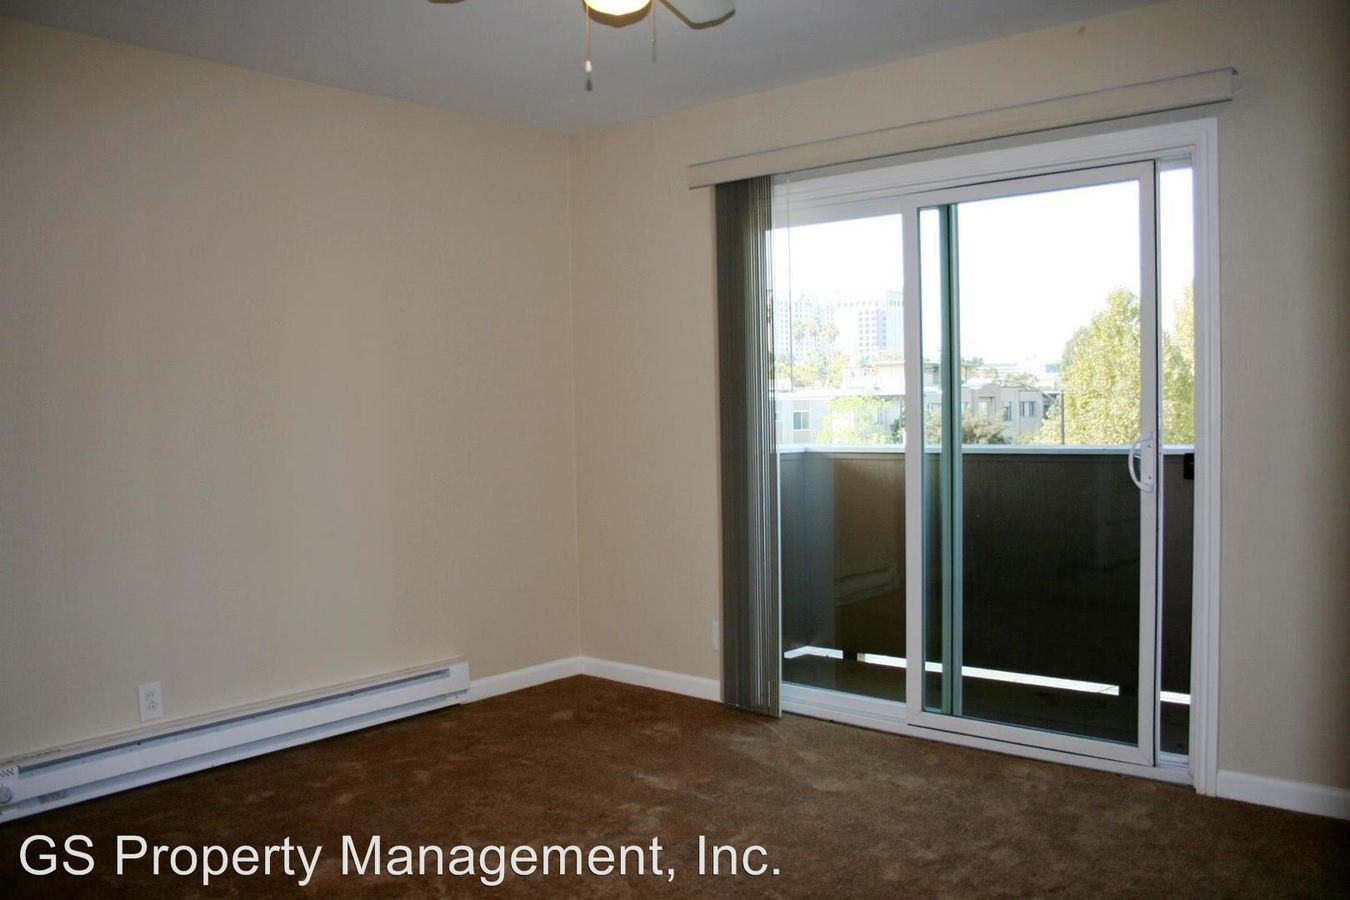 2 Bedrooms 2 Bathrooms Apartment for rent at 460 S. 4th Street in San Jose, CA